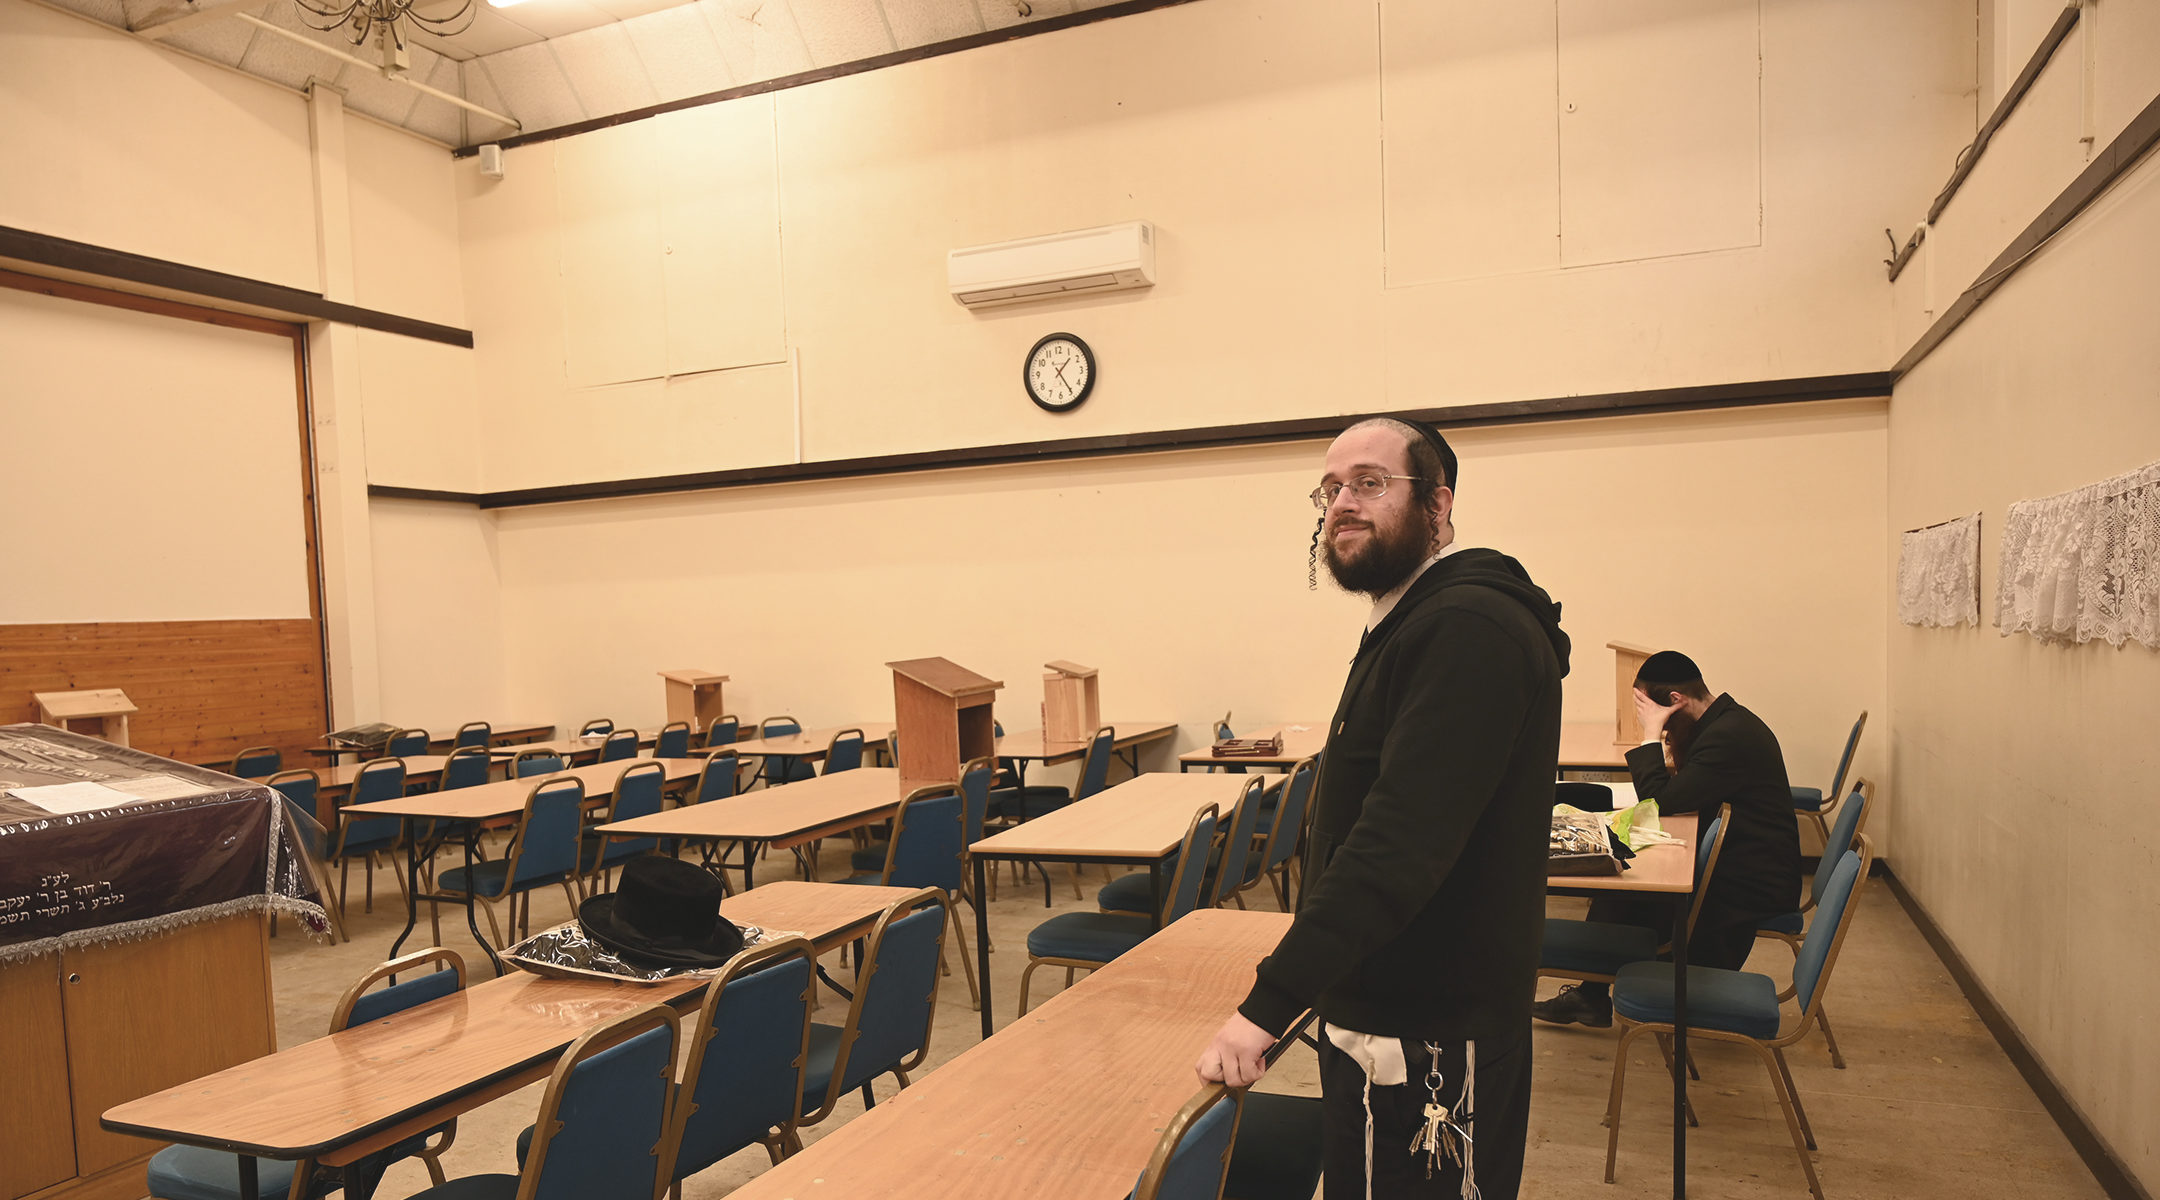 Jacob Gross at the yeshiva and synagogue on Canvey Island, UK on Dec. 13, 2019. (Cnaan Liphshiz)